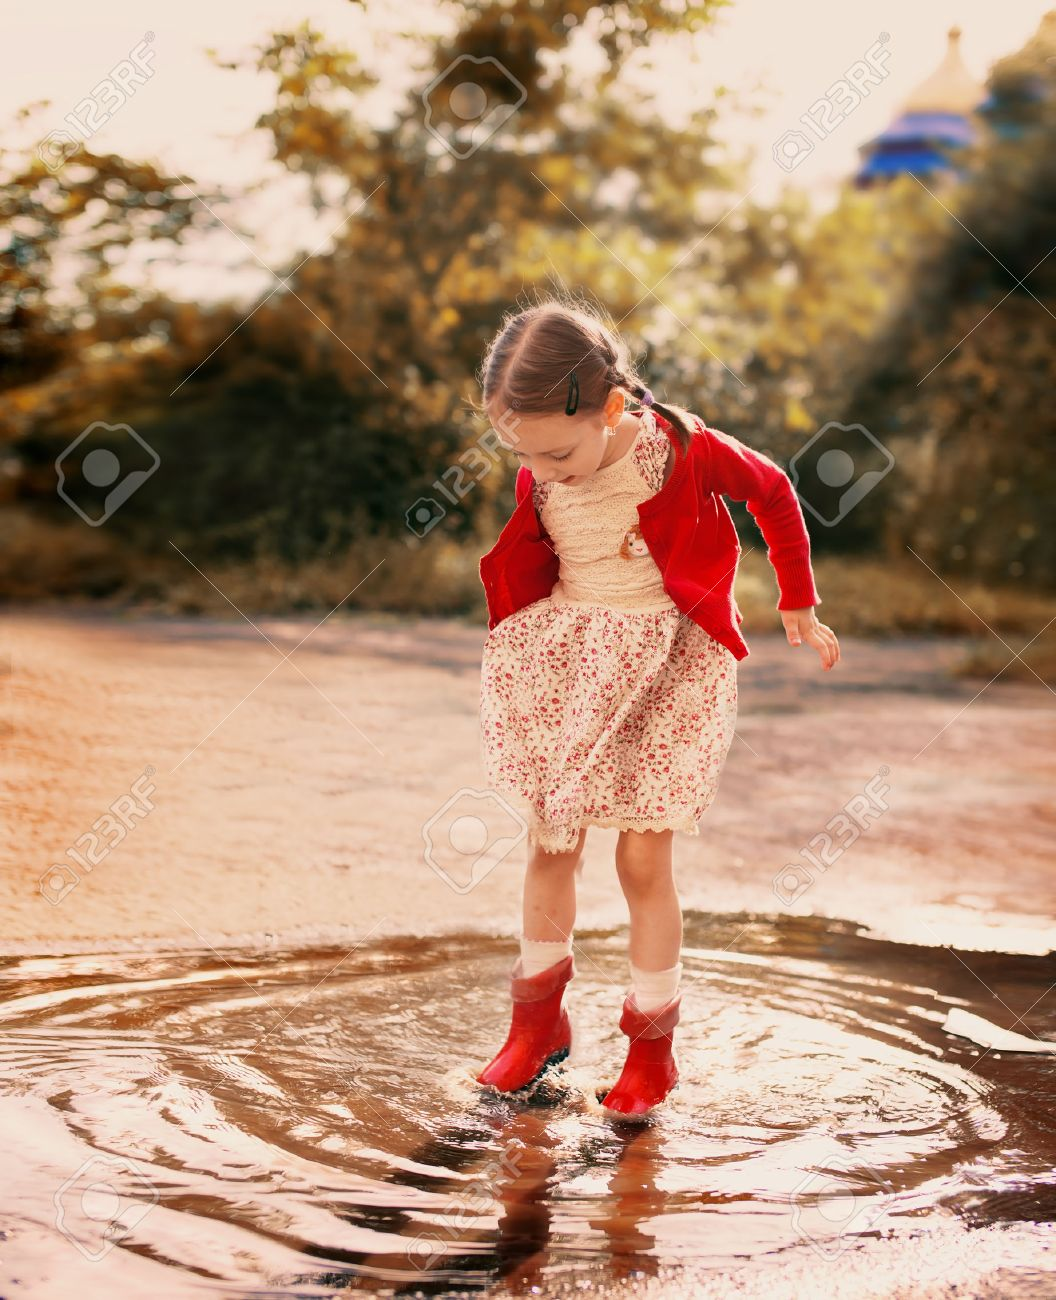 Rain Boots Images & Stock Pictures. Royalty Free Rain Boots Photos ...